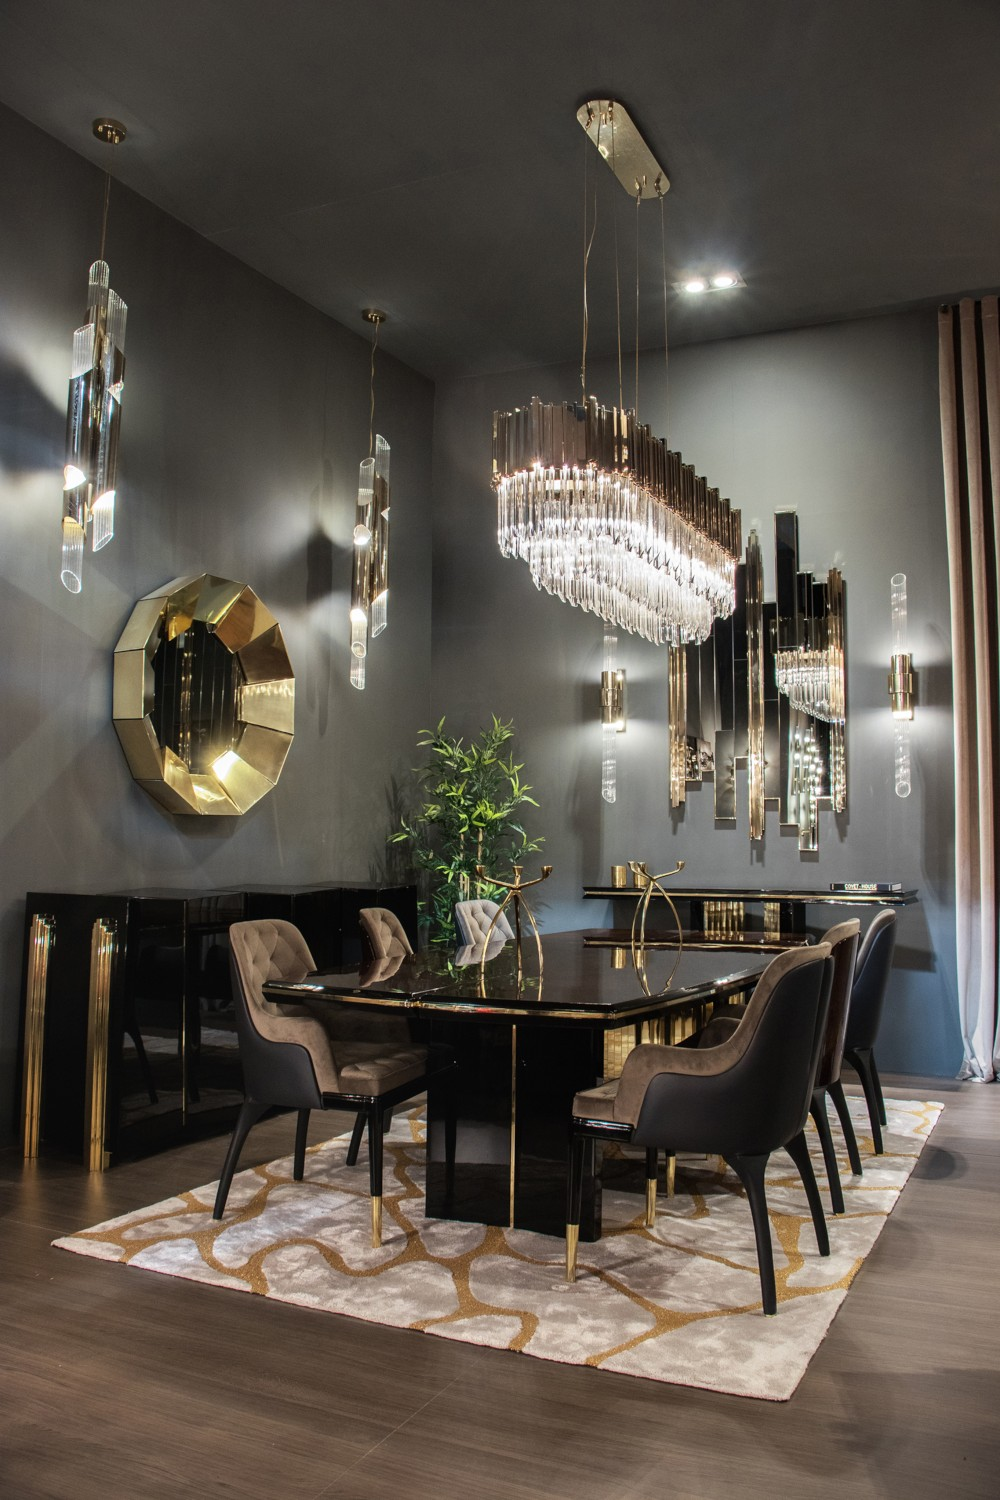 What To Expect From LUXXU Home At iSaloni 2019 02 luxxu home at isaloni 2019 What To Expect From LUXXU Home At iSaloni 2019 What To Expect From LUXXU Home At iSaloni 2019 02